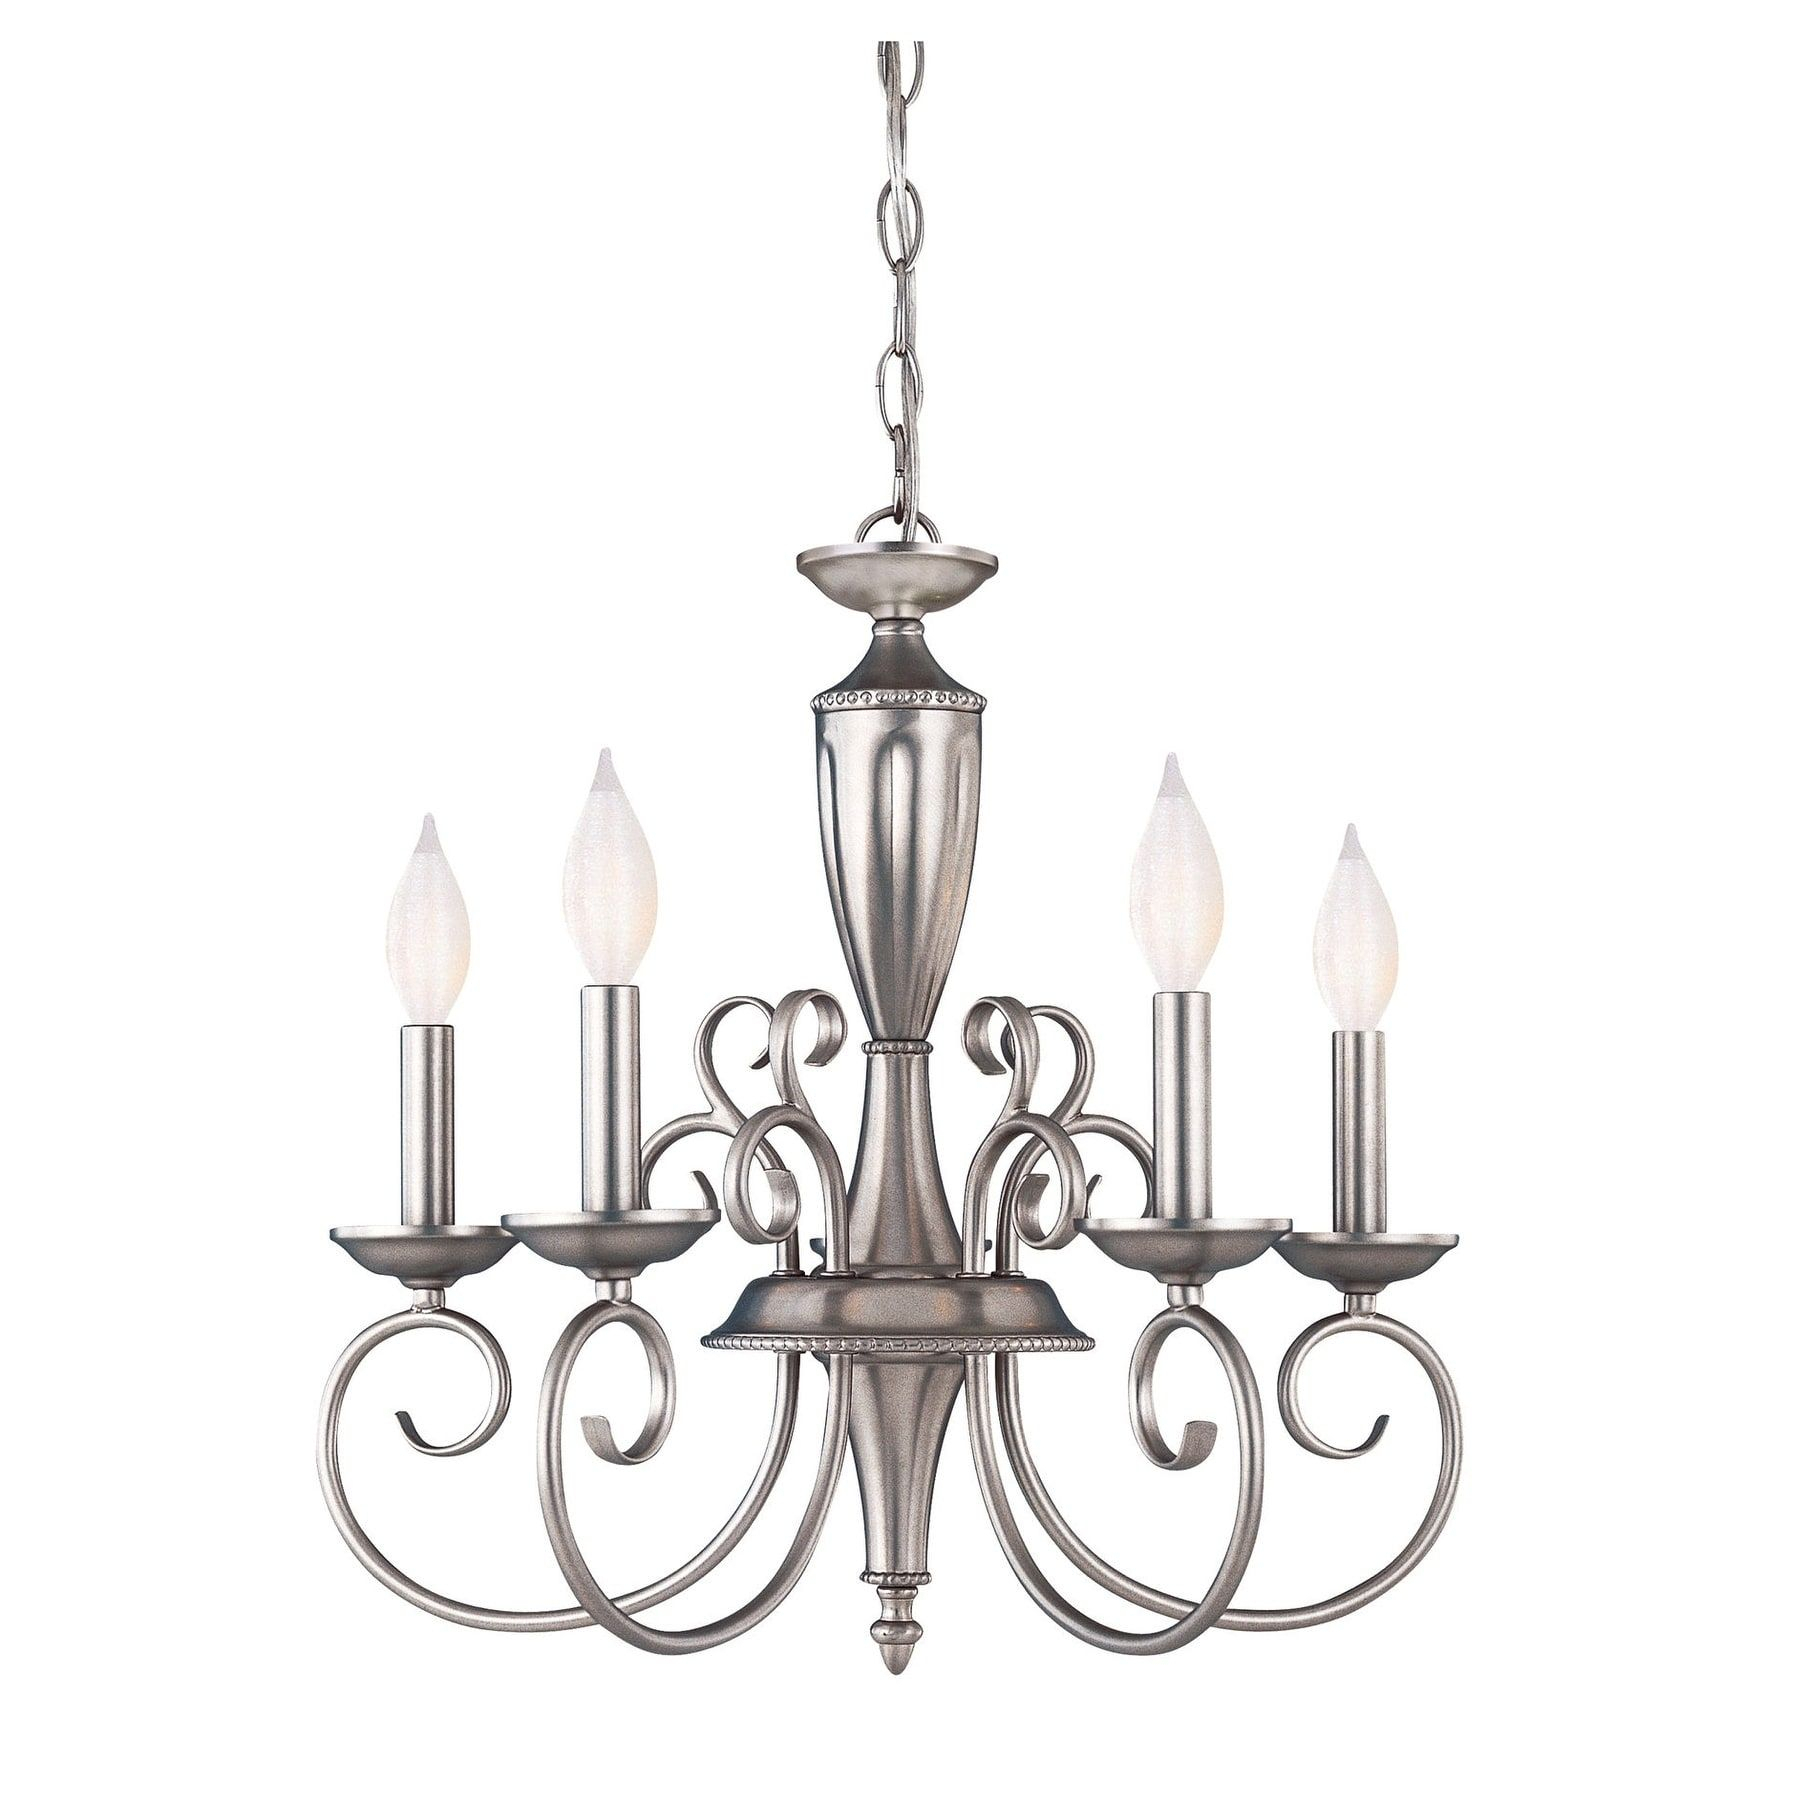 Spirit 5 Light Chandelier Pewter In 2019 | Products | 5 Throughout Berger 5 Light Candle Style Chandeliers (View 7 of 30)